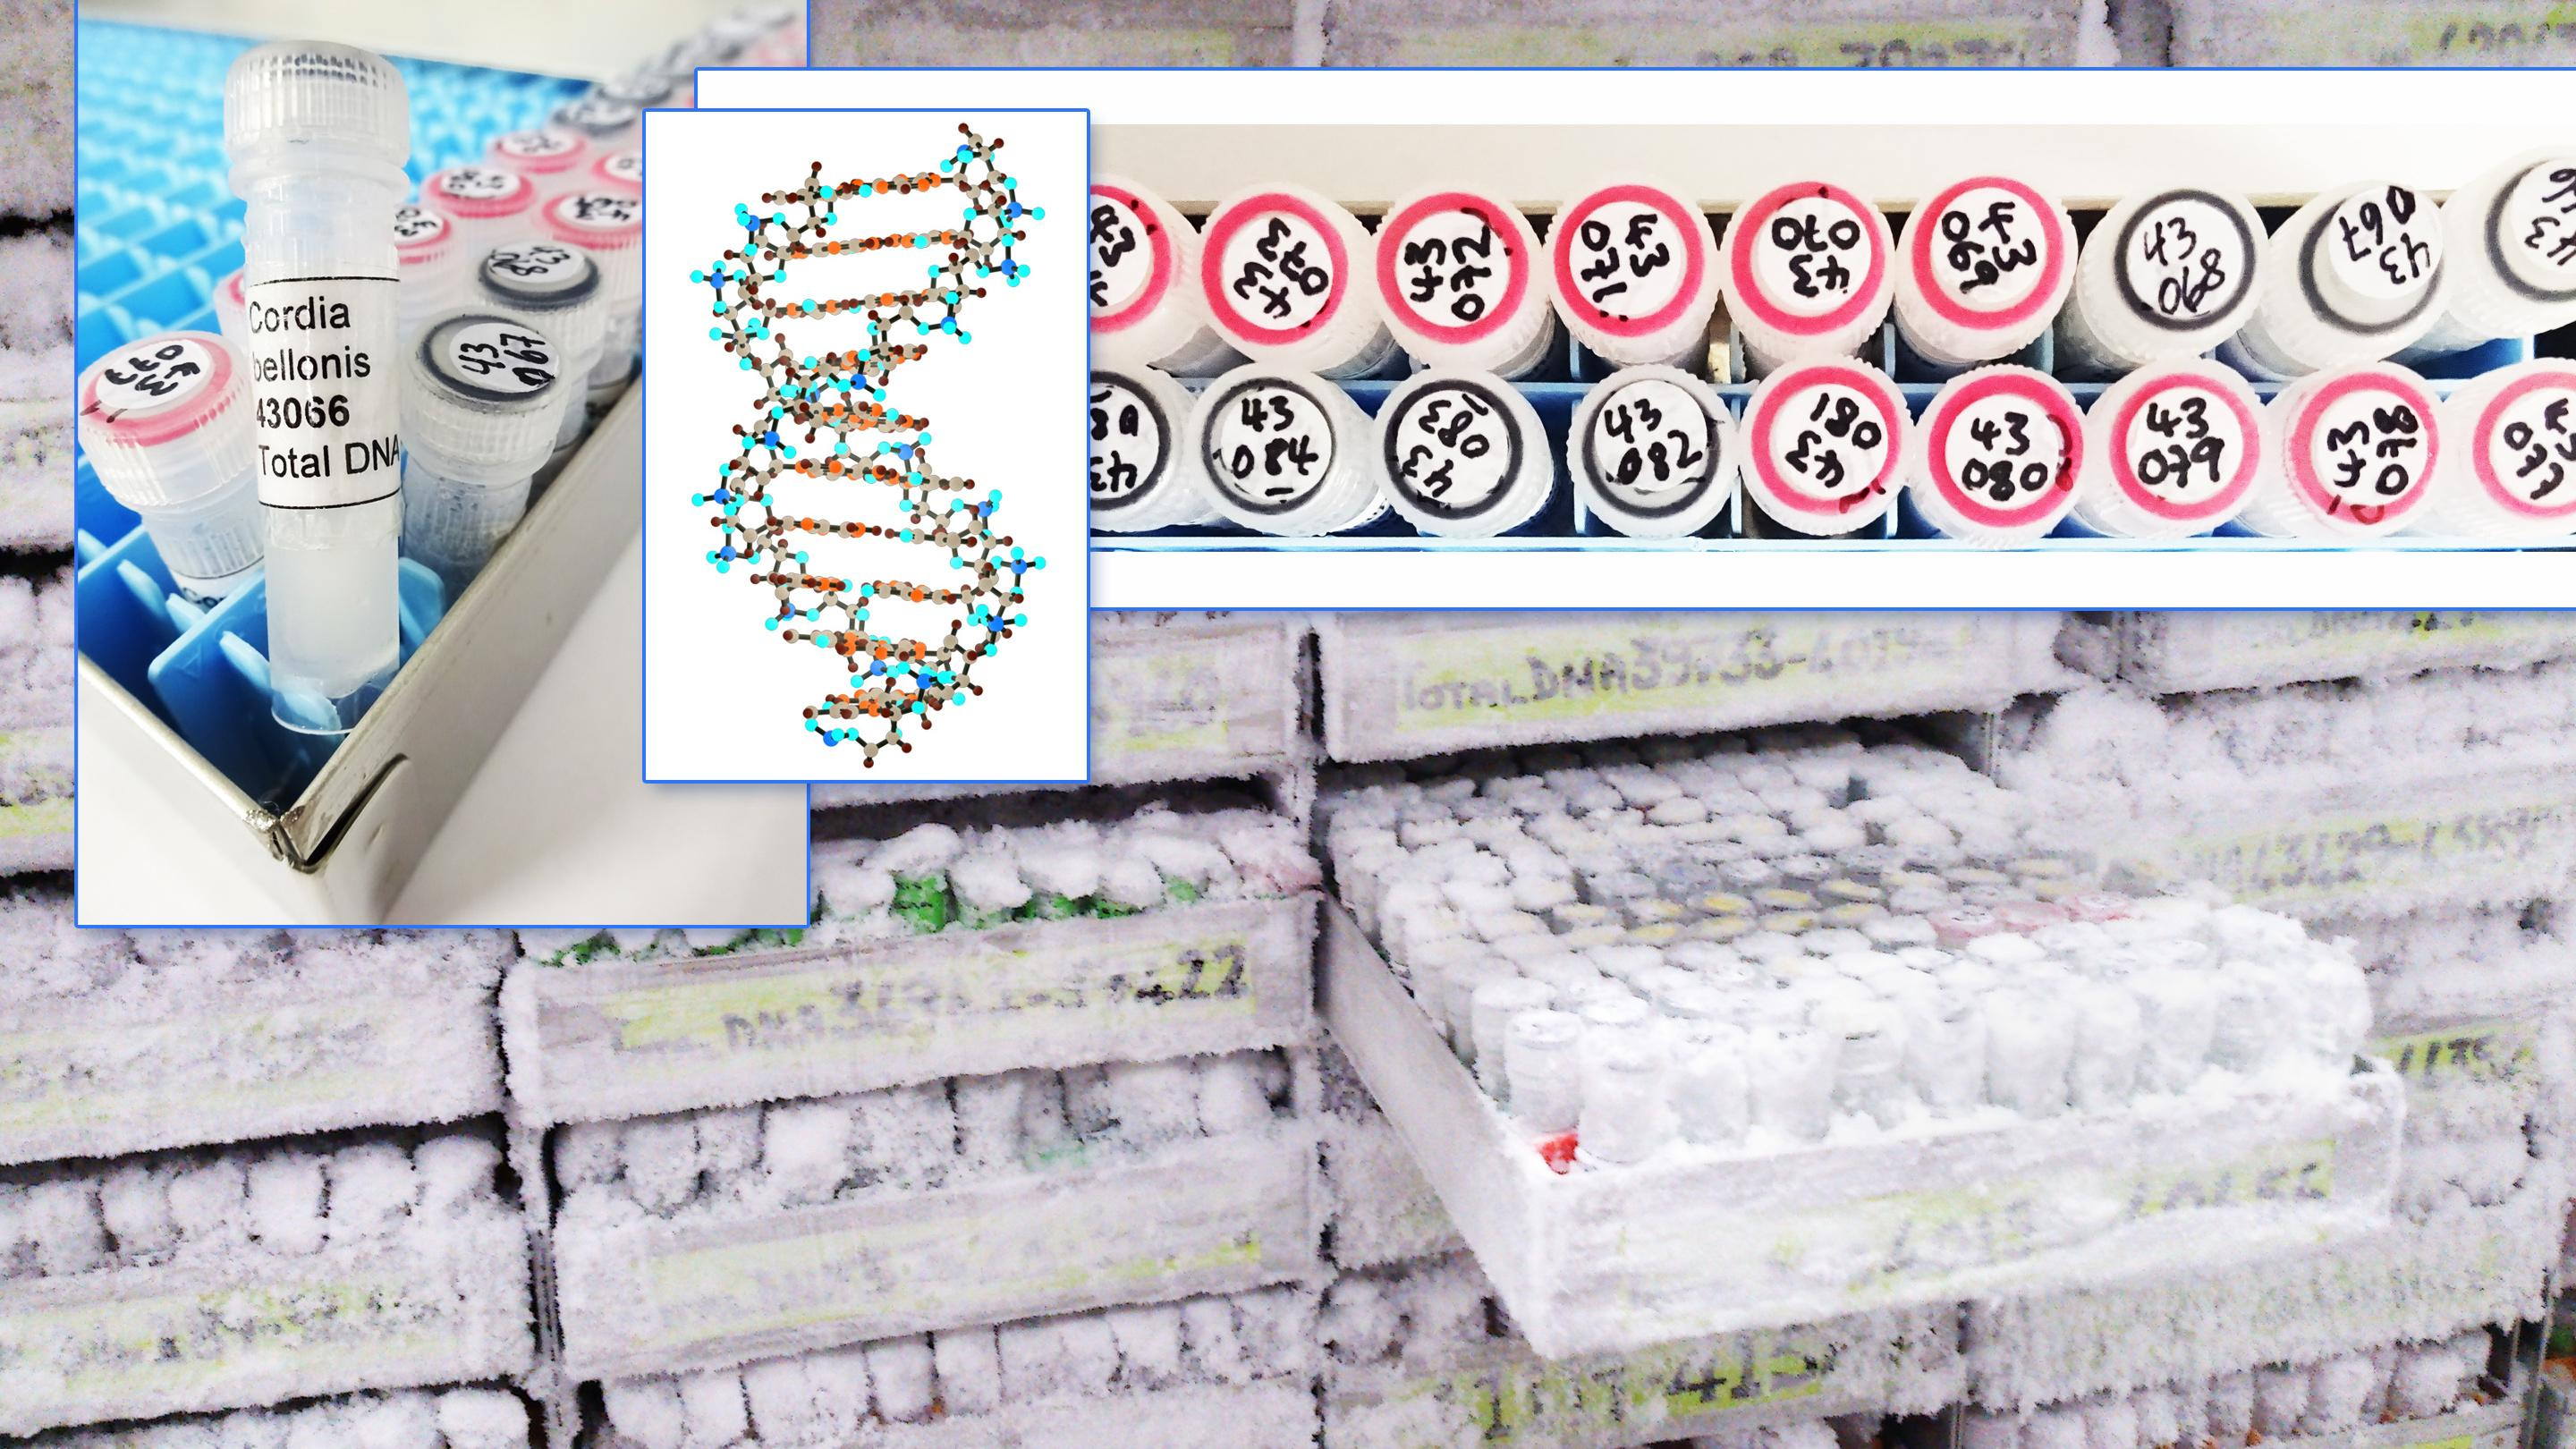 DNA and Tissue Bank